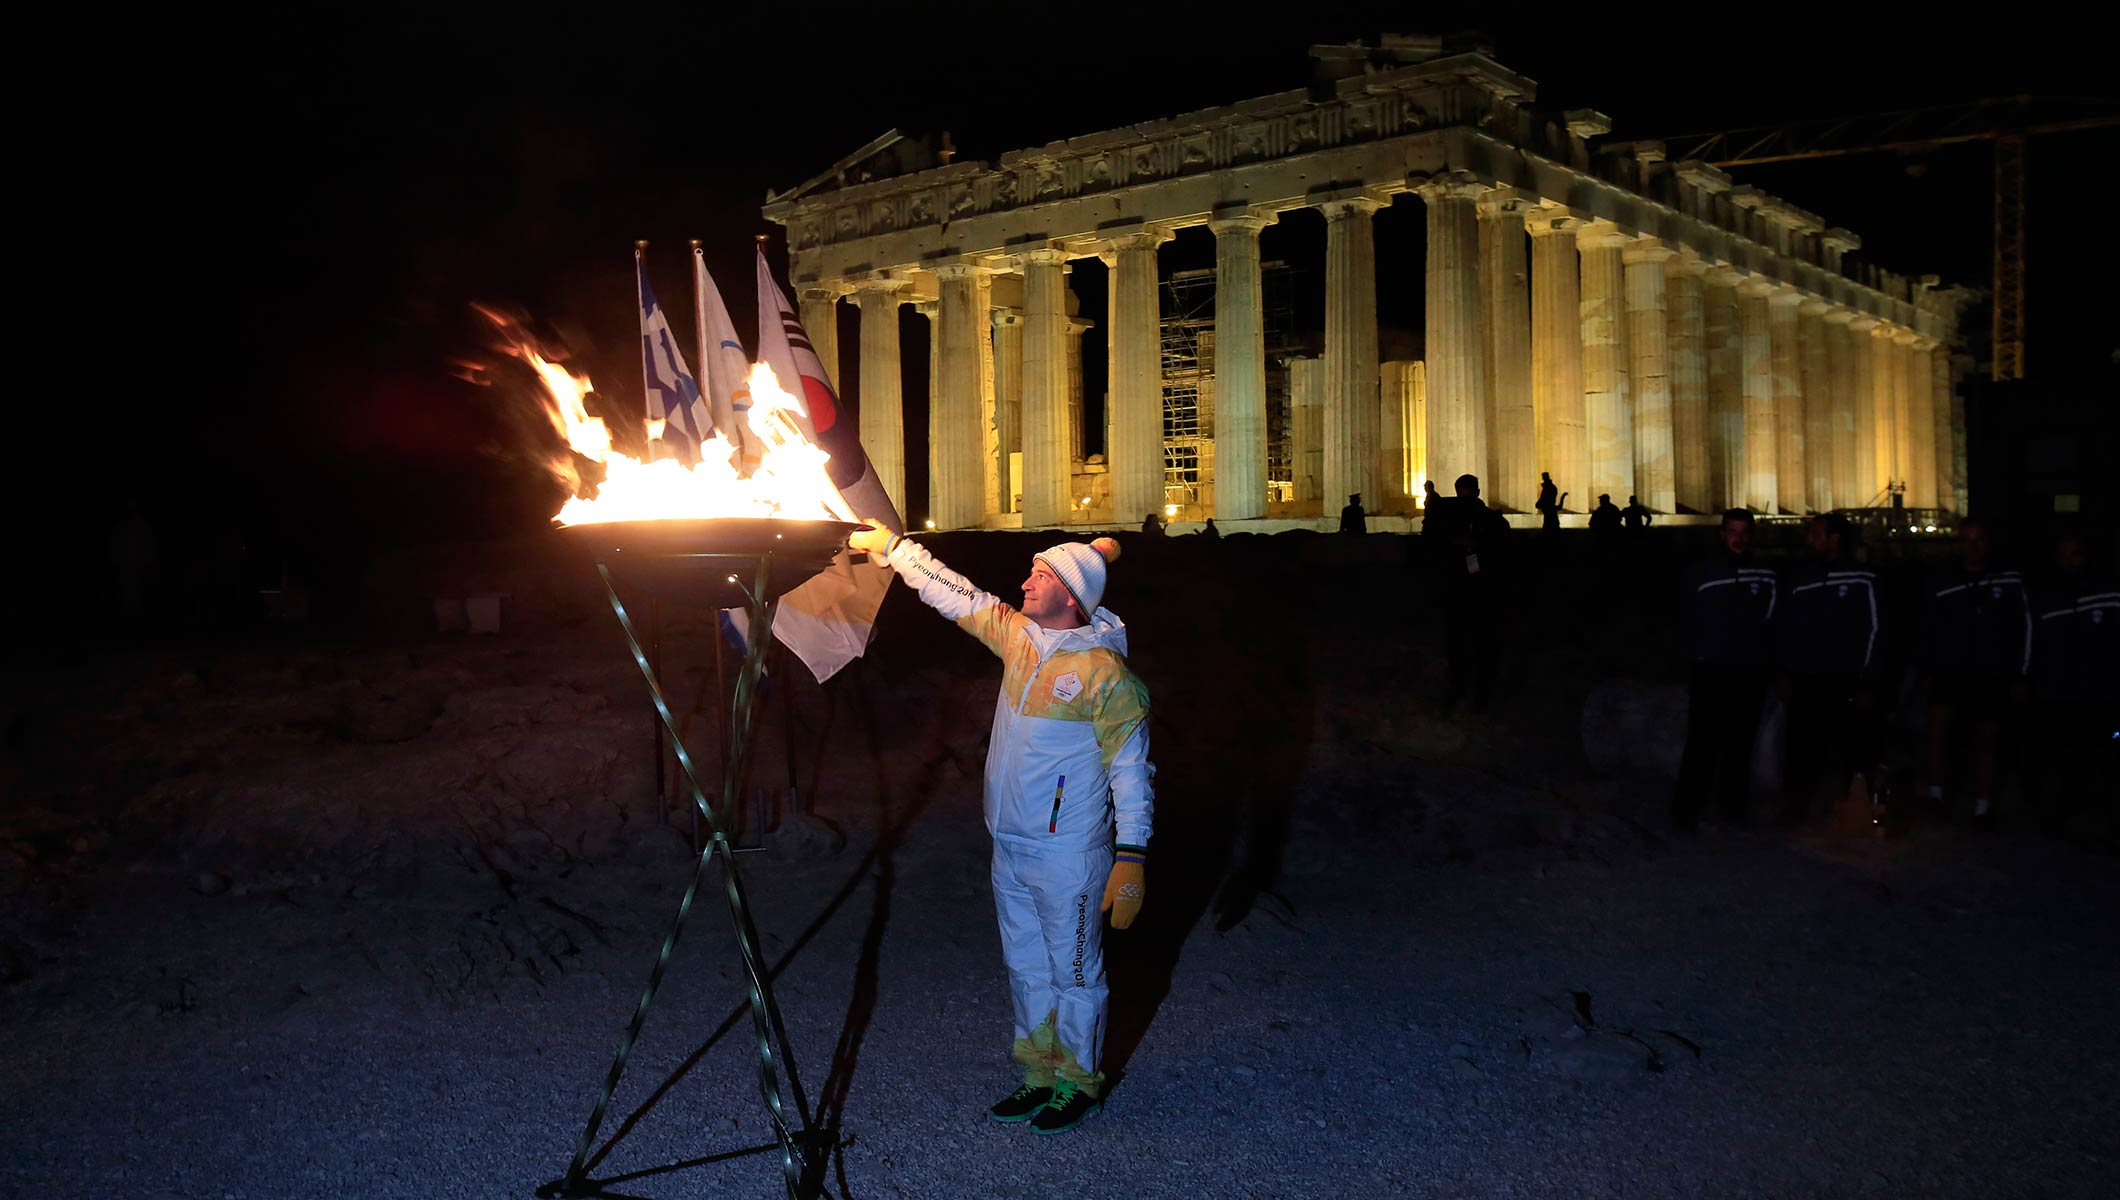 Olympic Torch Relay PyeongChang 2018